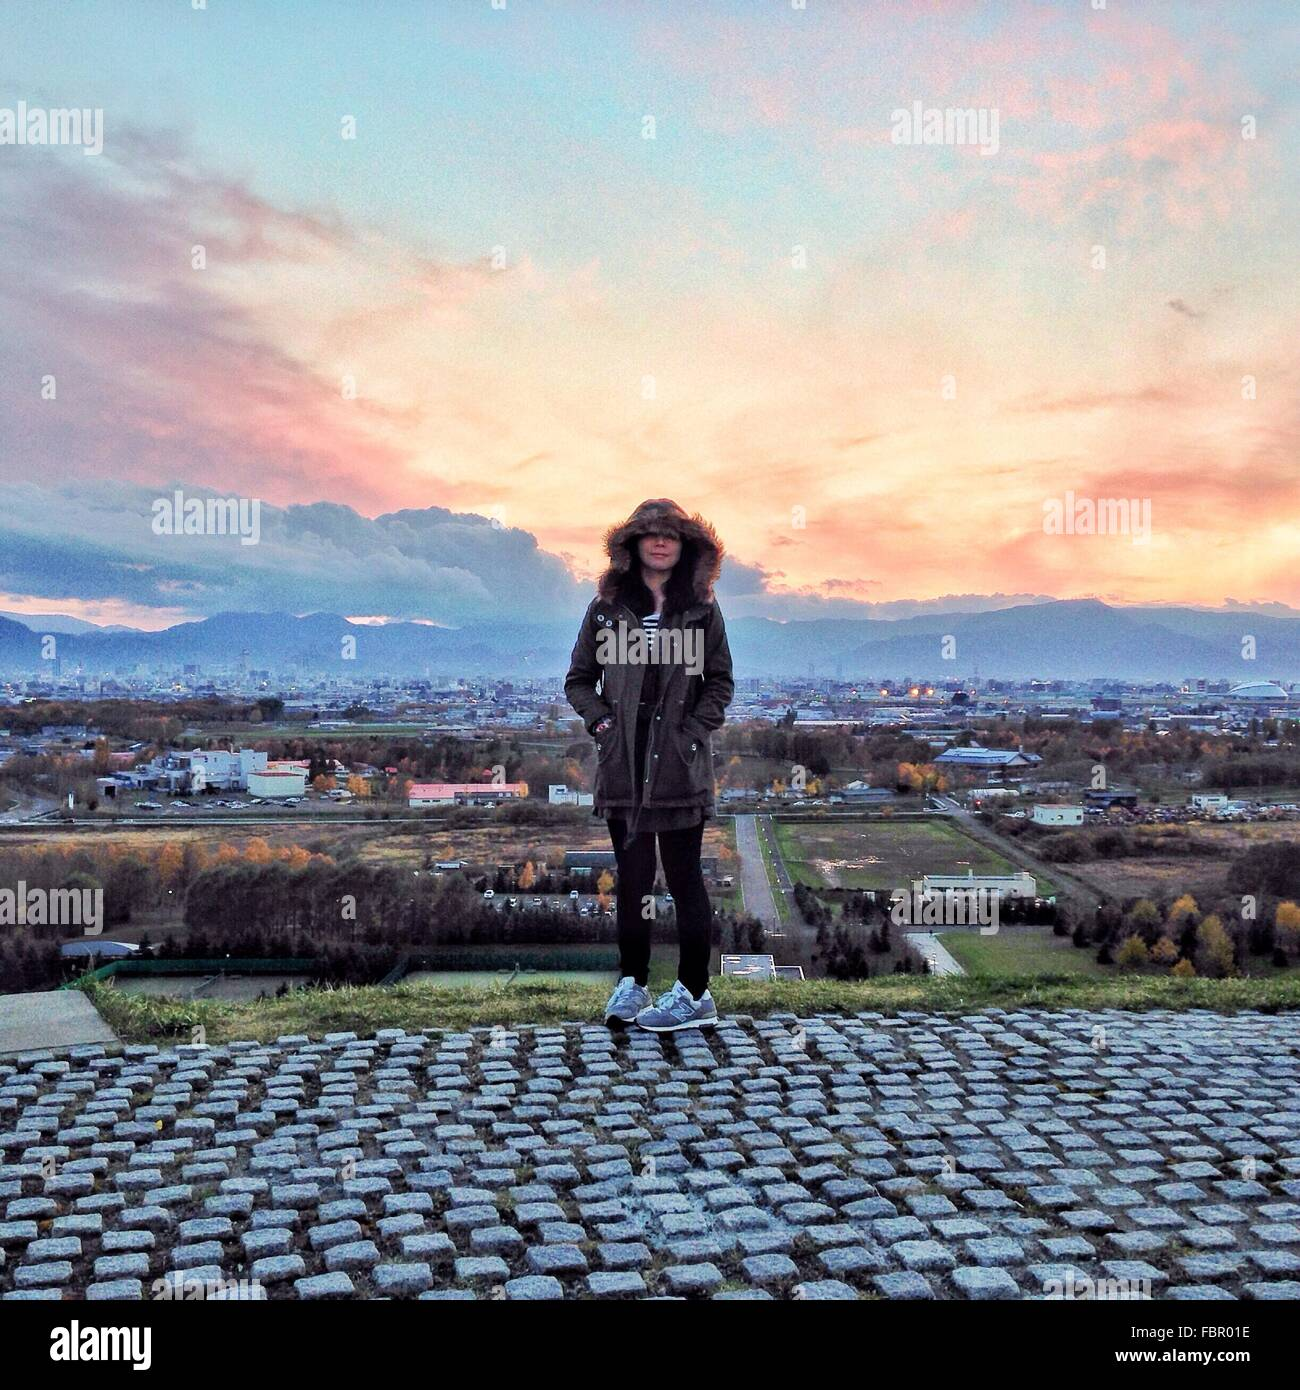 Full Length Of Woman In Hooded Jacket Standing Against Cityscape During Sunset - Stock Image